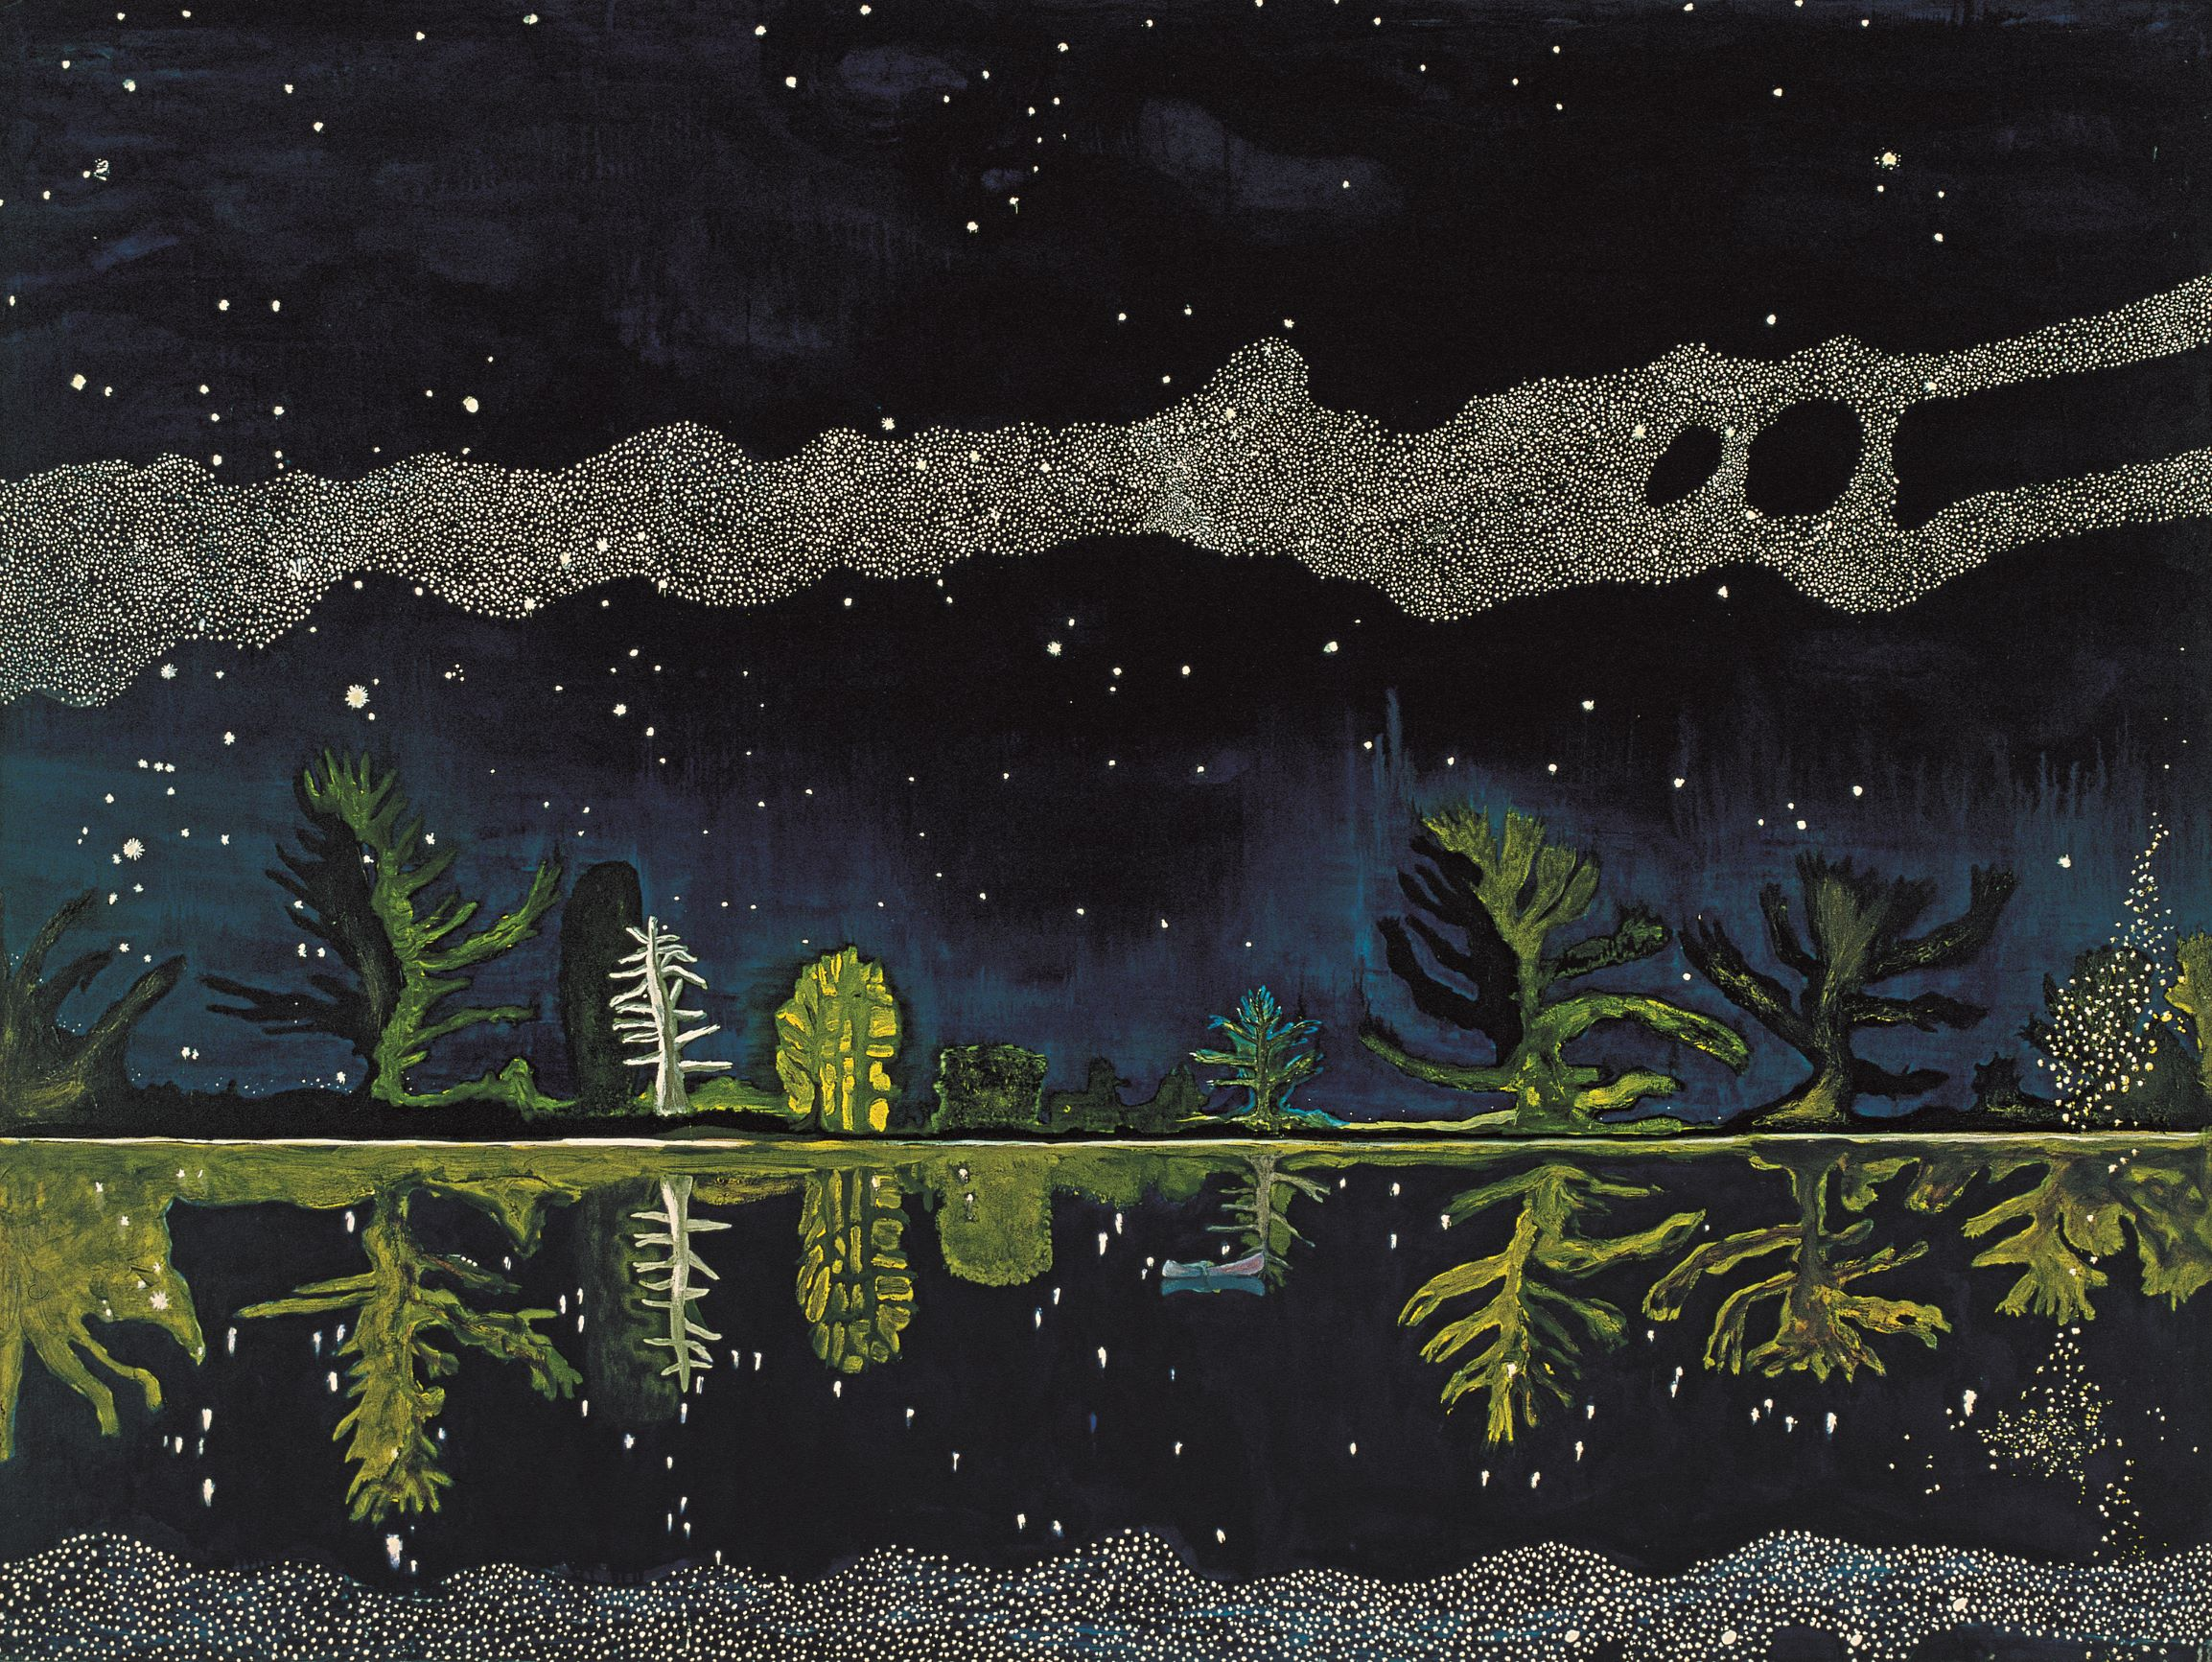 Milky Way (1989-90) by Peter Doig